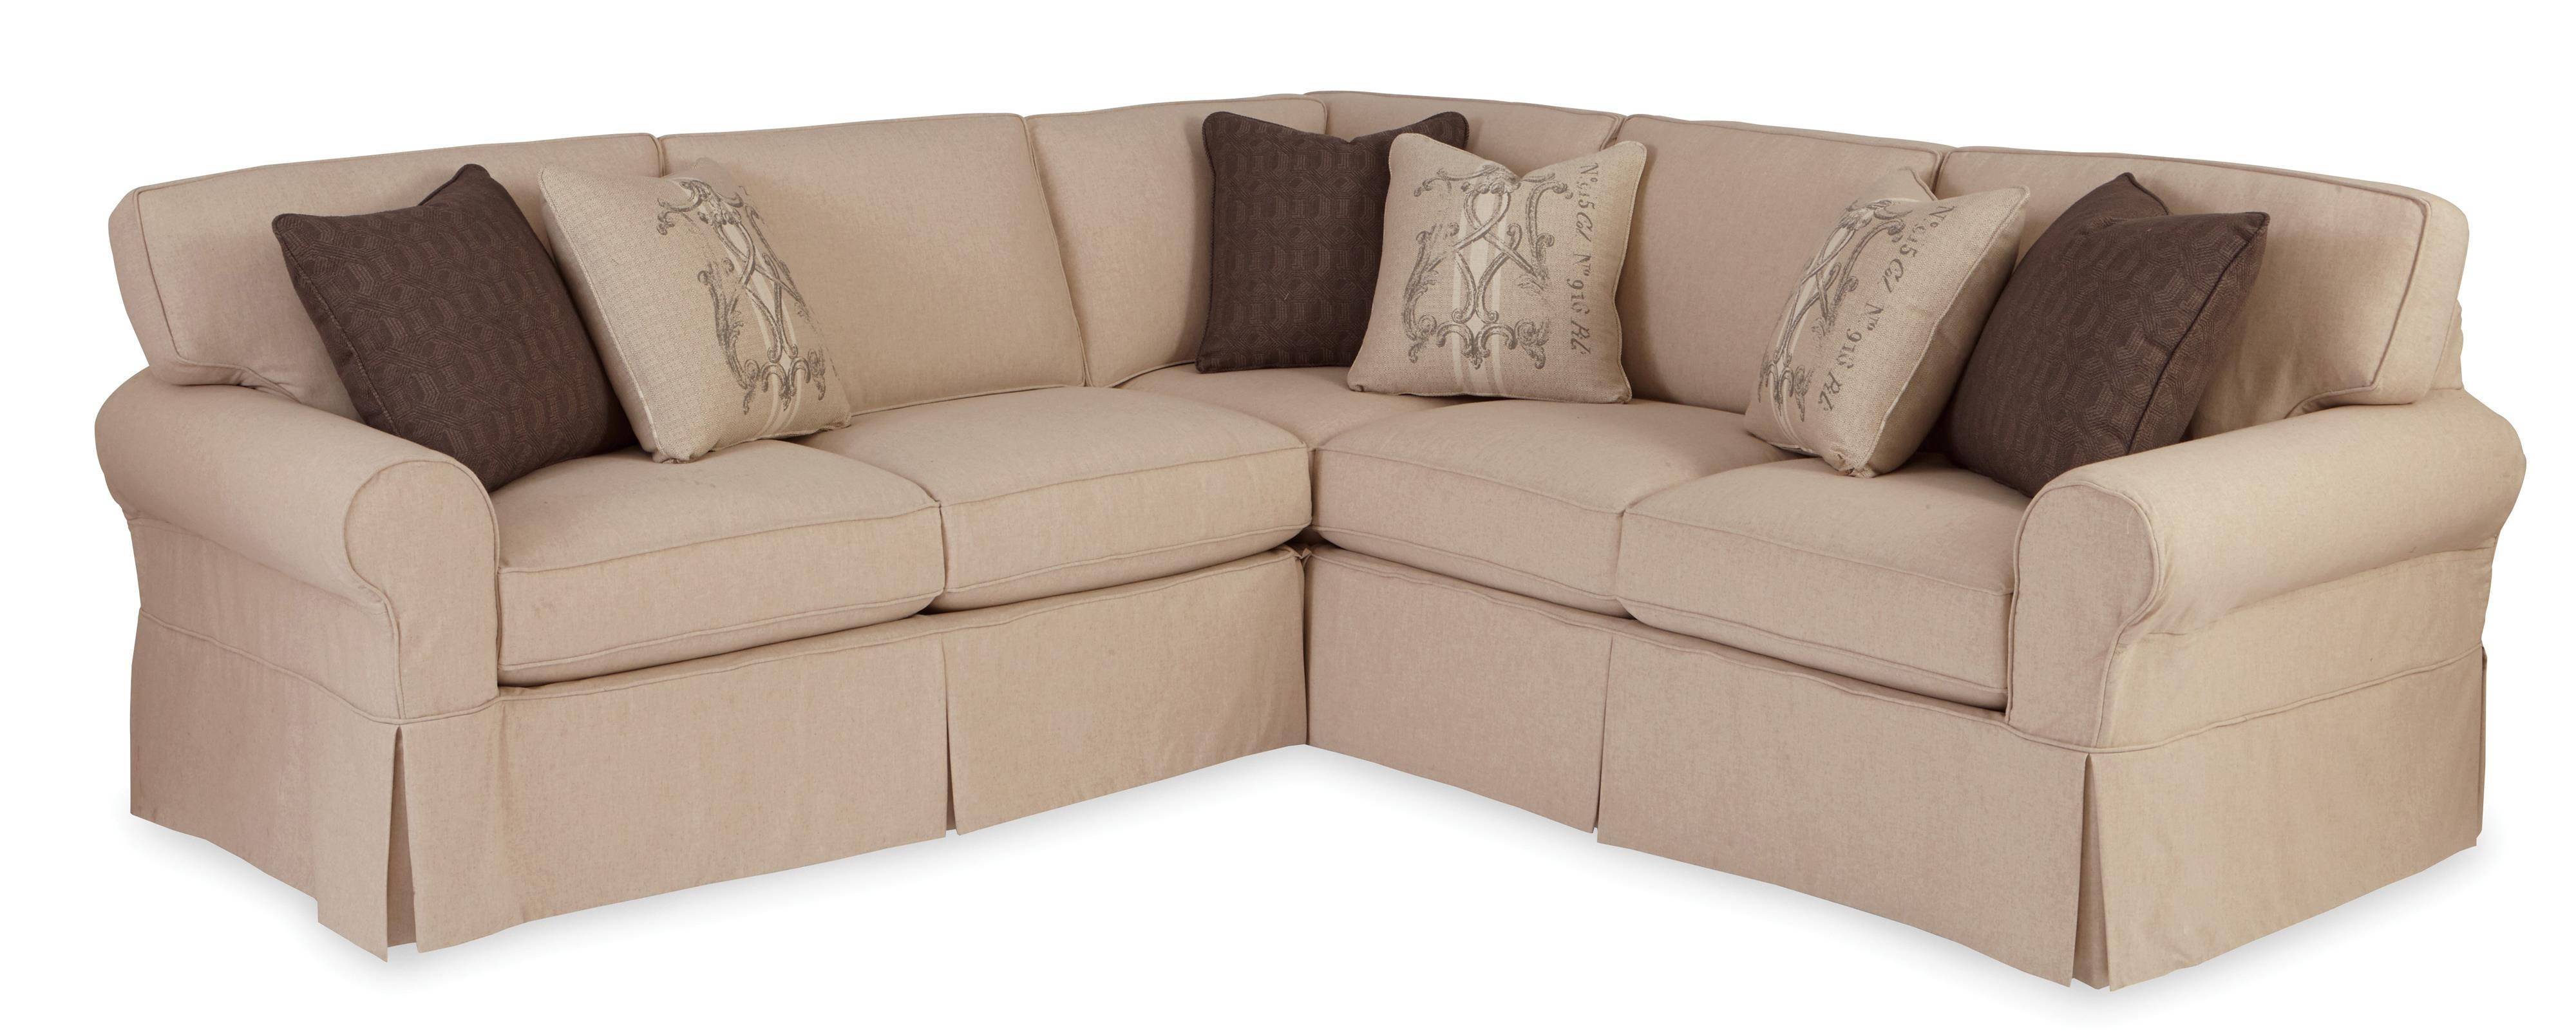 Two Piece Slipcovered Sectional Sofa With Raf Return Sofa pertaining to Craftmaster Sectional Sofa (Image 30 of 30)